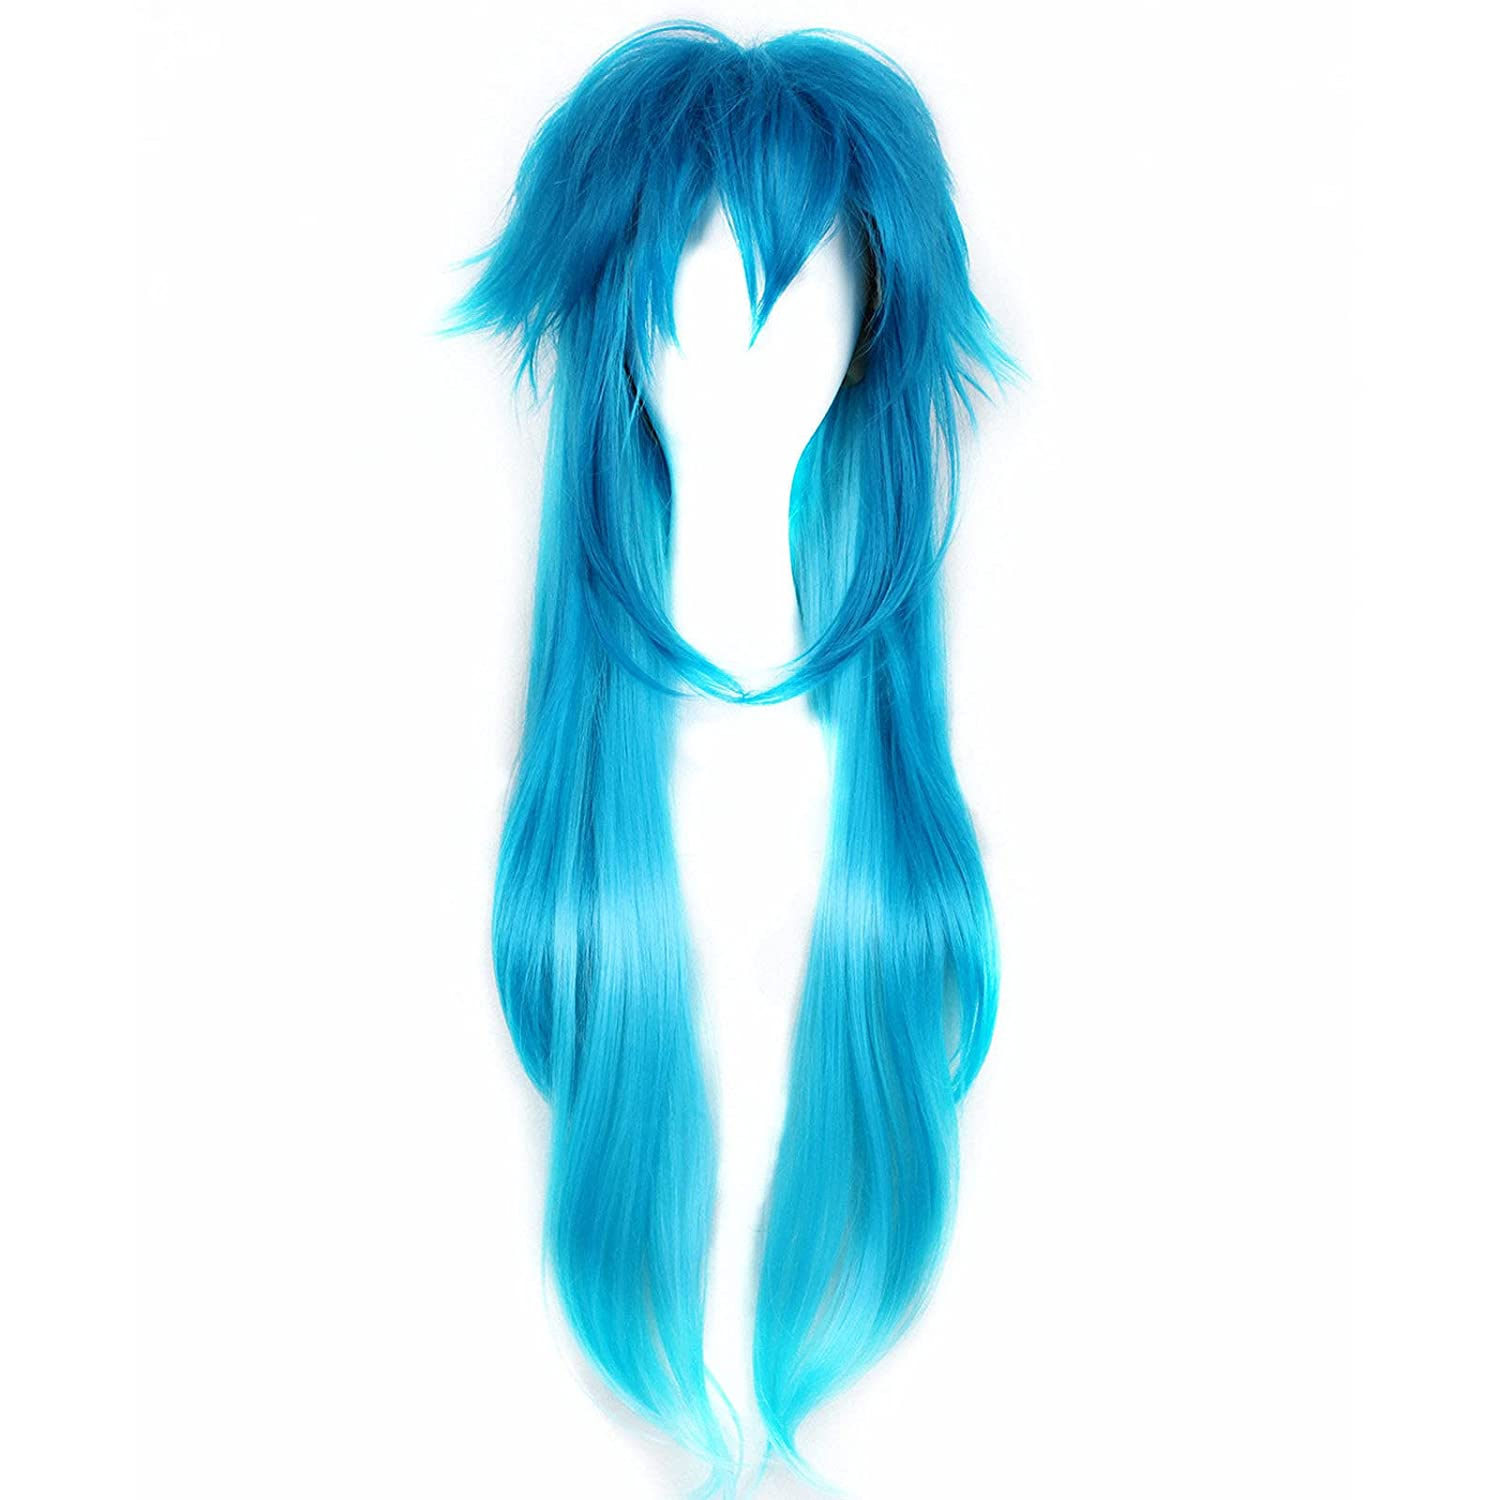 Fwhwj Year-end gift Men's Cosplay Wig 31'' Long Popular standard Mixed Straight Blue Ha Costume